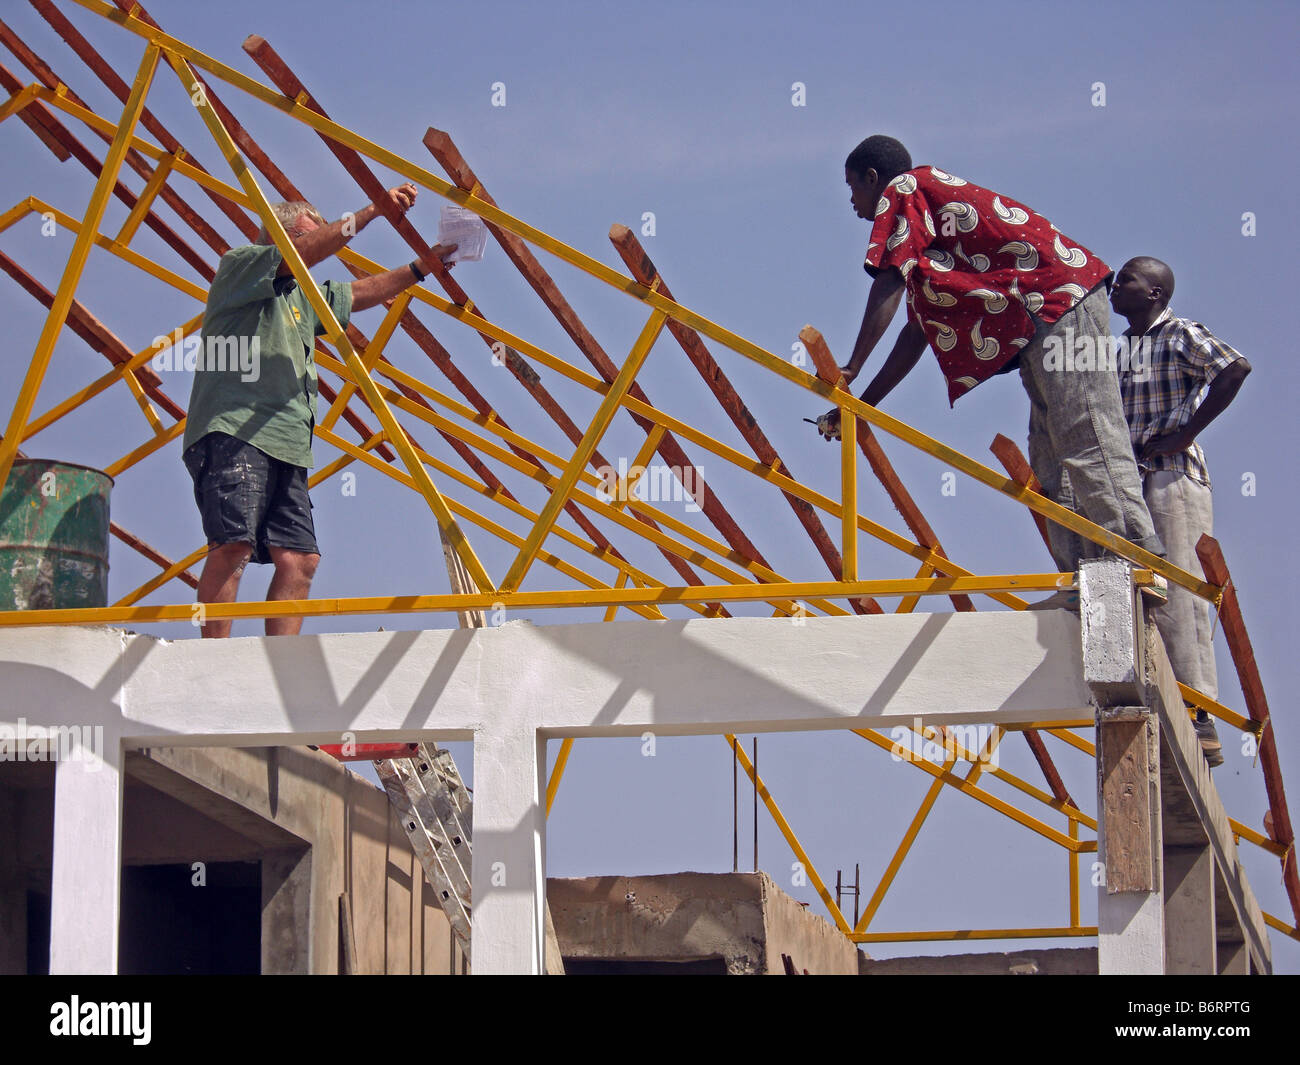 Building Construction Practices : Unsafe work practice on a building site in the gambia west